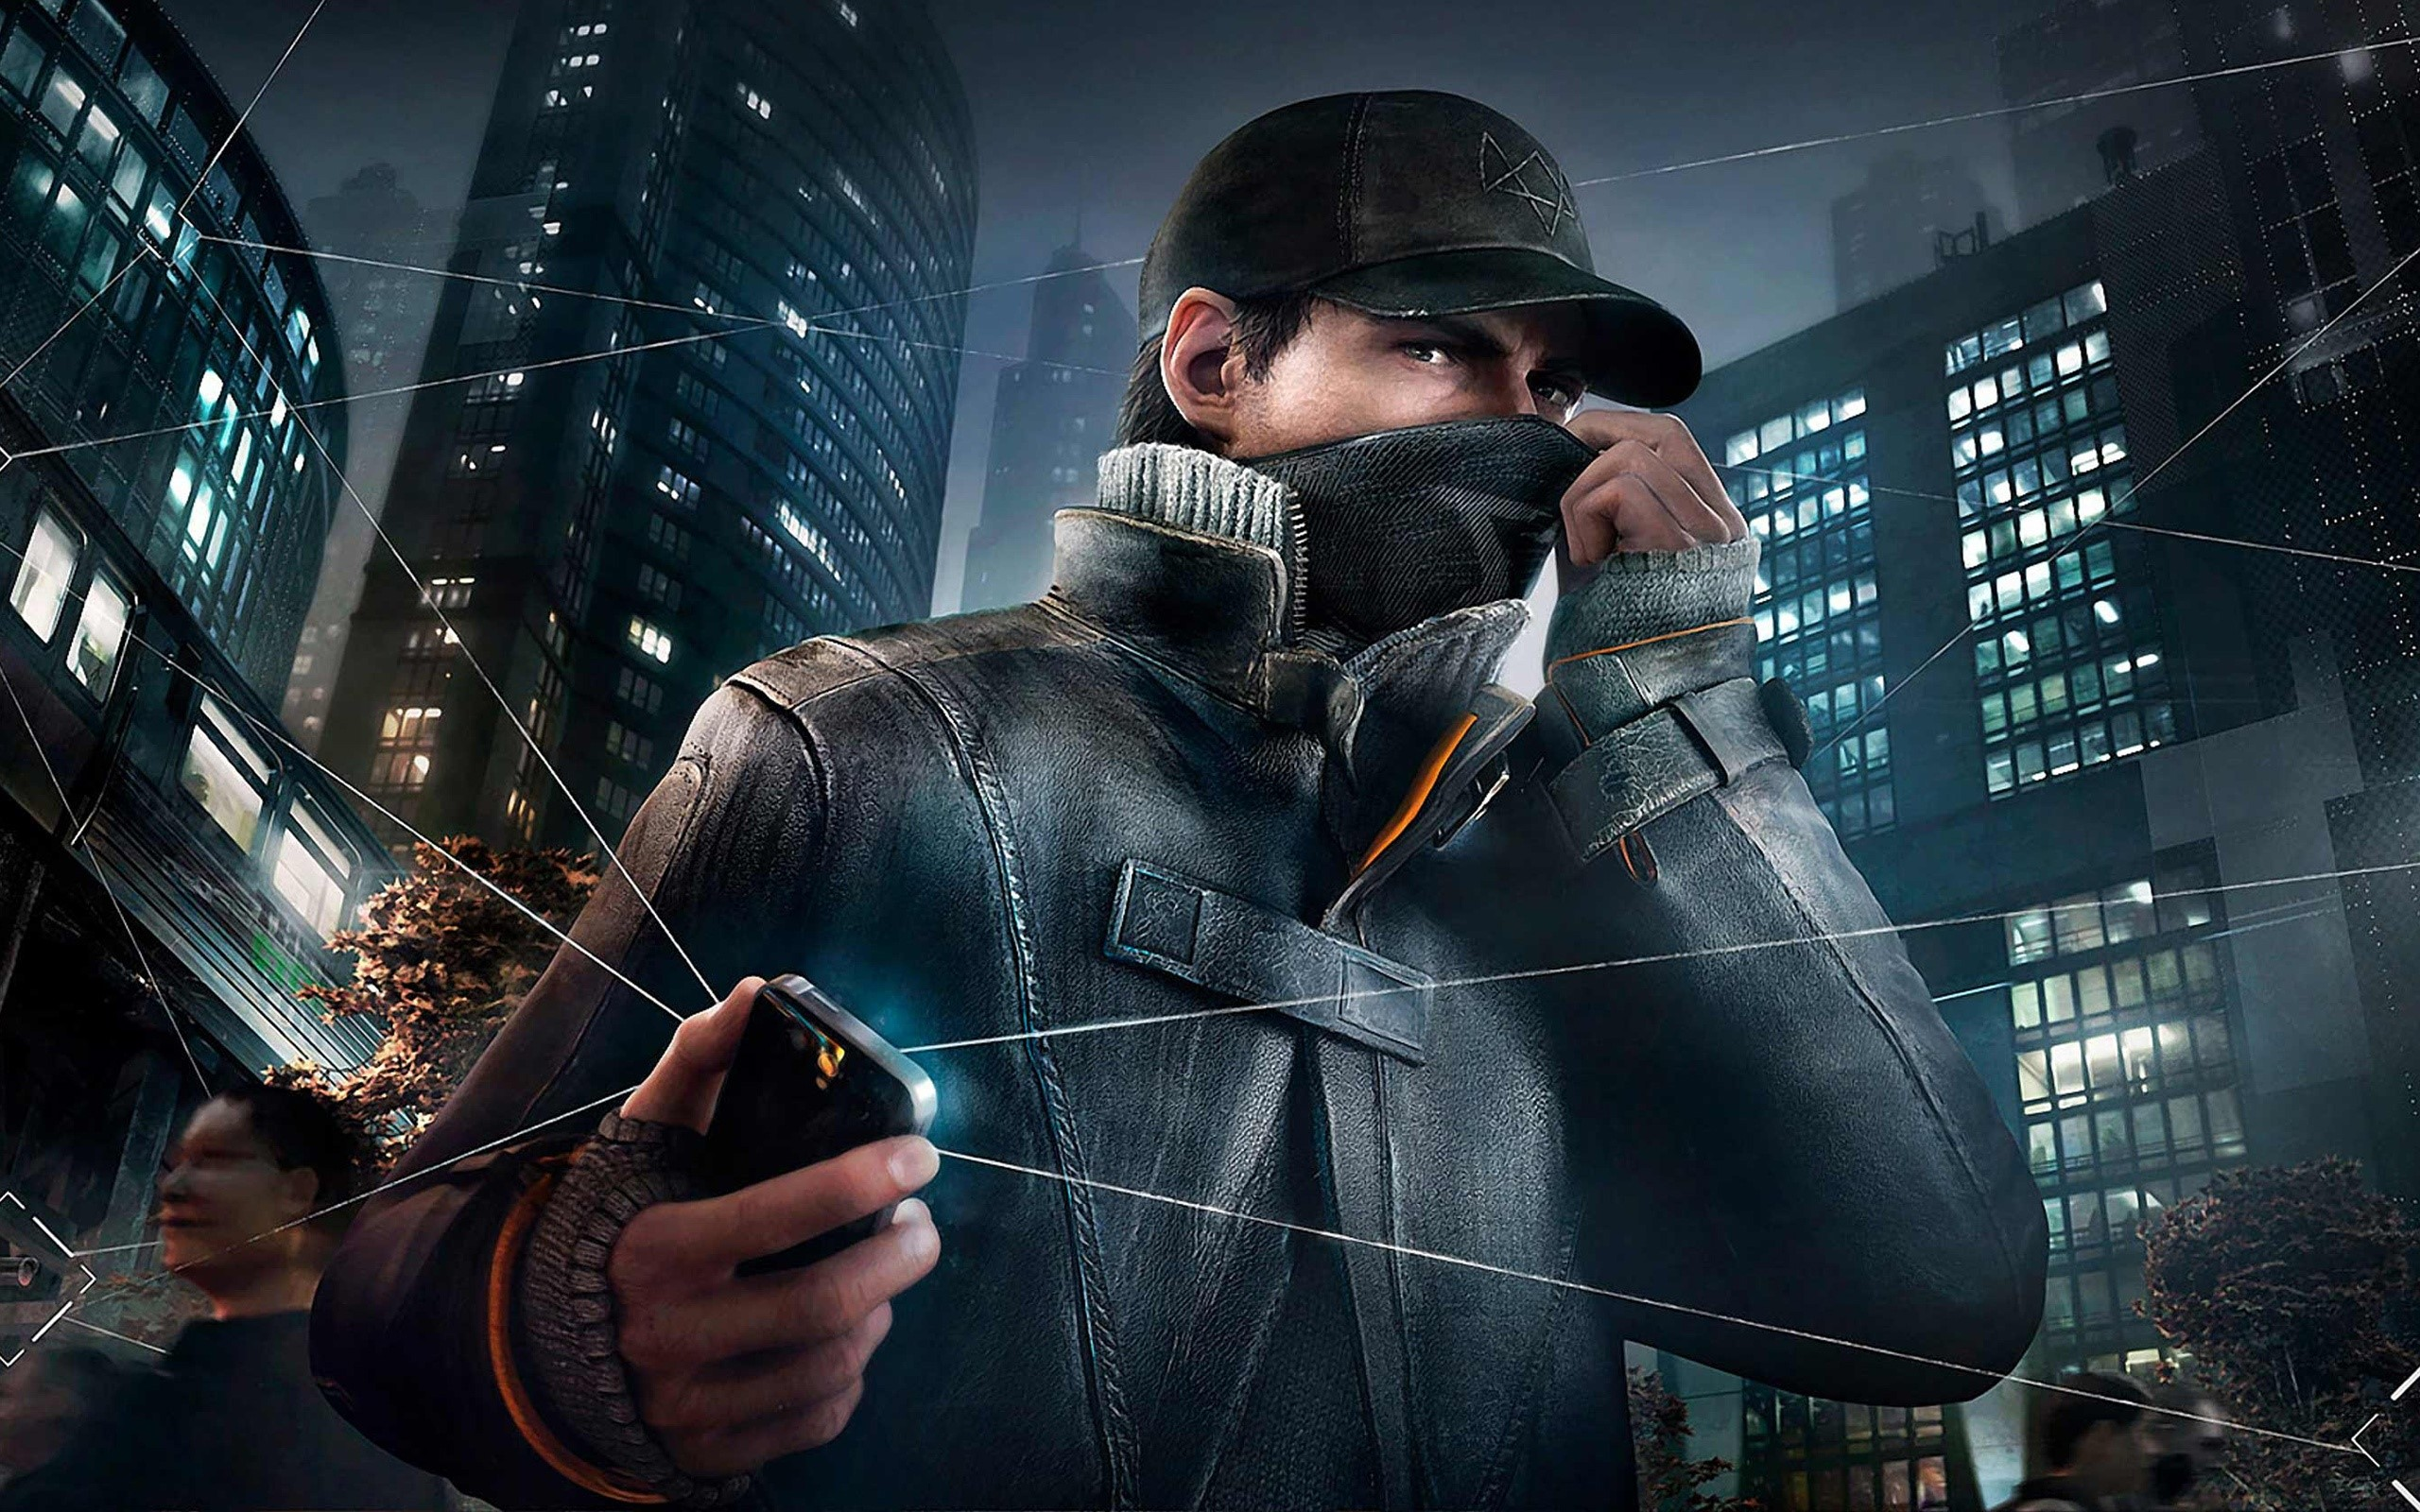 Fondo de pantalla de Aiden Pearce en Watch Dogs Imágenes